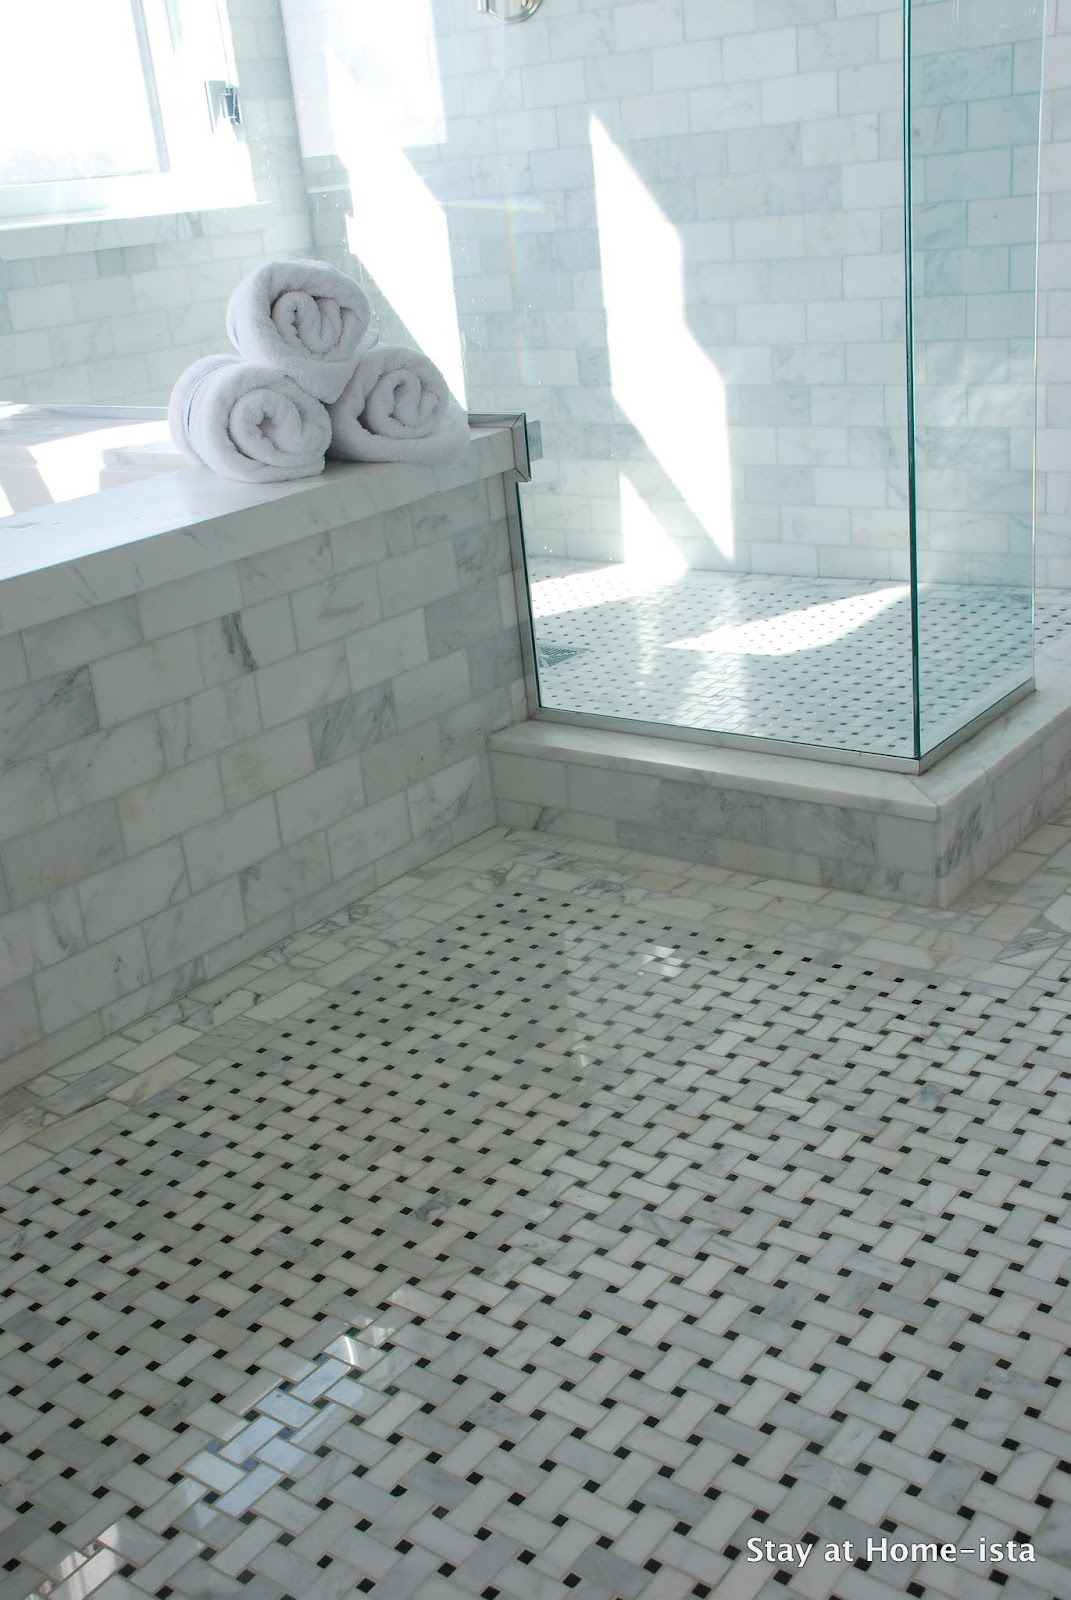 30 nice pictures and ideas of modern bathroom wall tile Images of bathroom tile floors